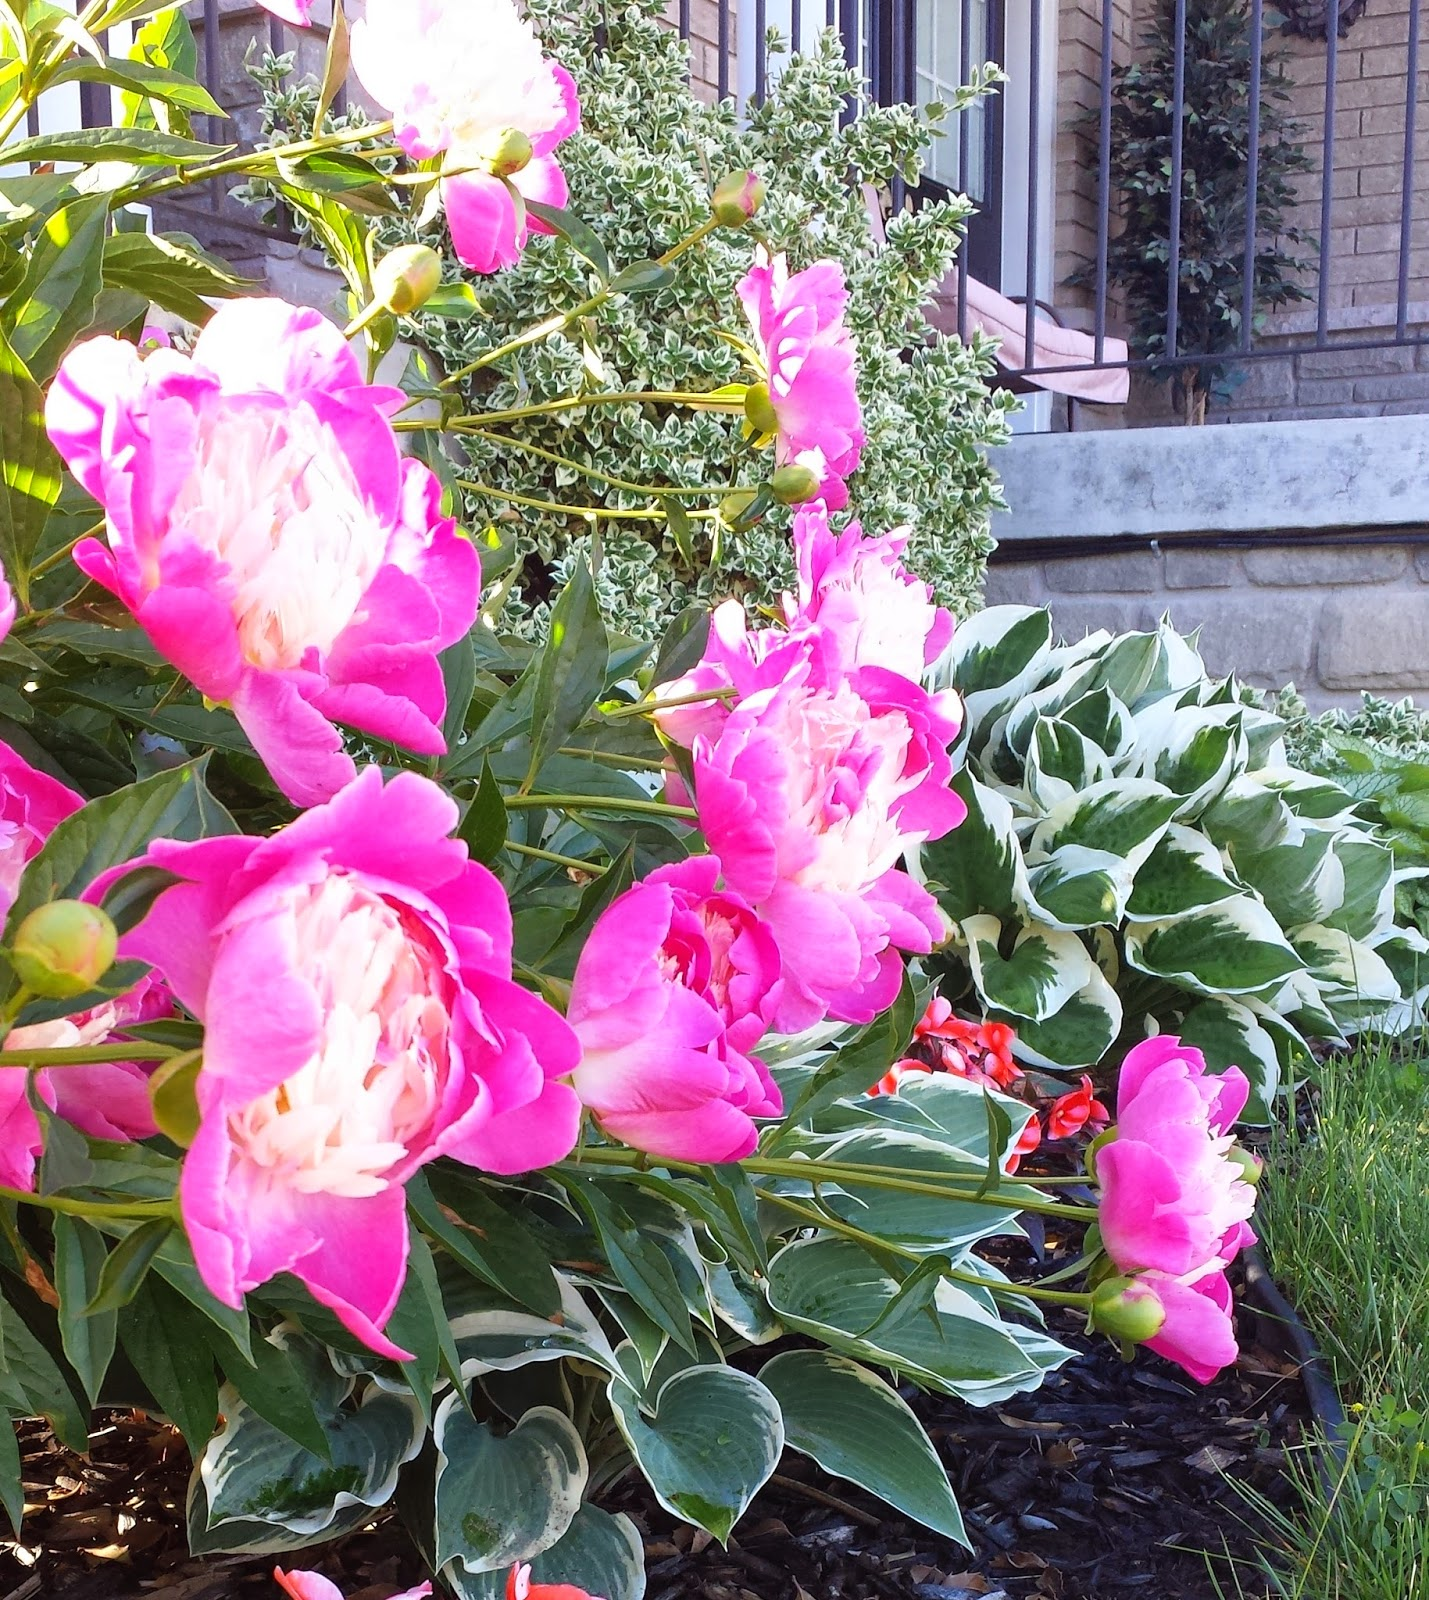 Peony blossoms drooping low to the ground.